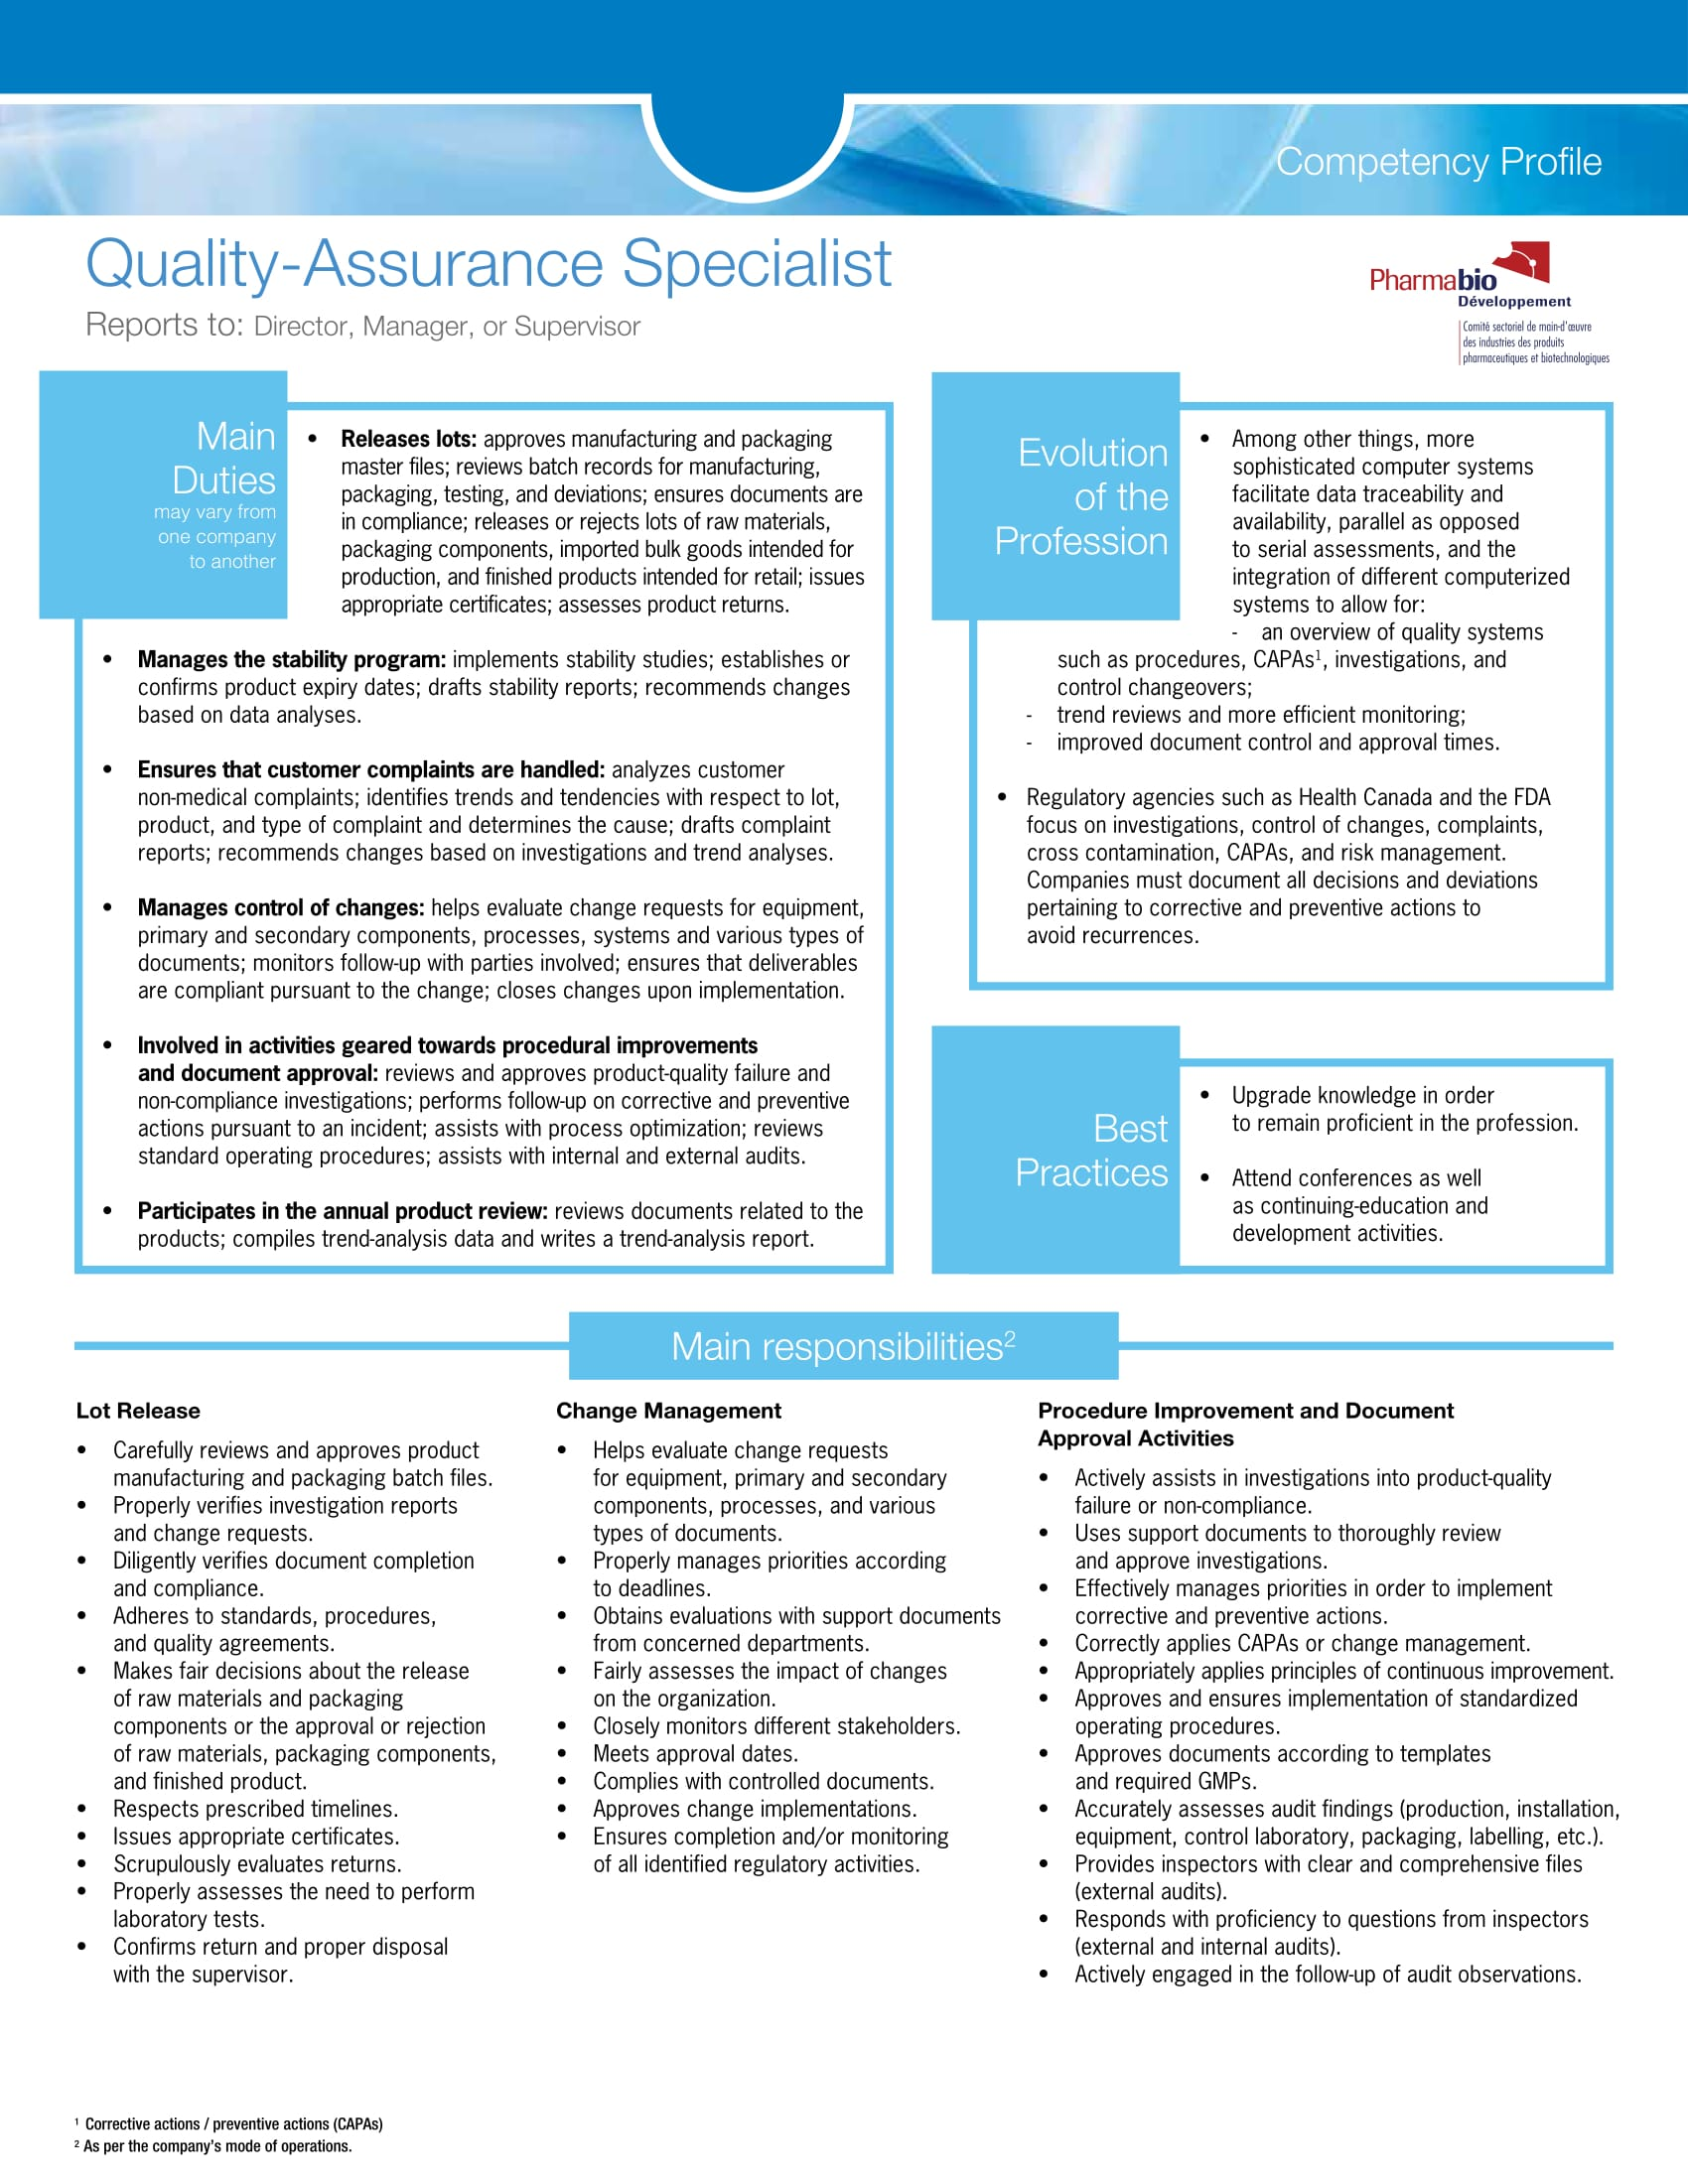 healthcare quality management resume examples